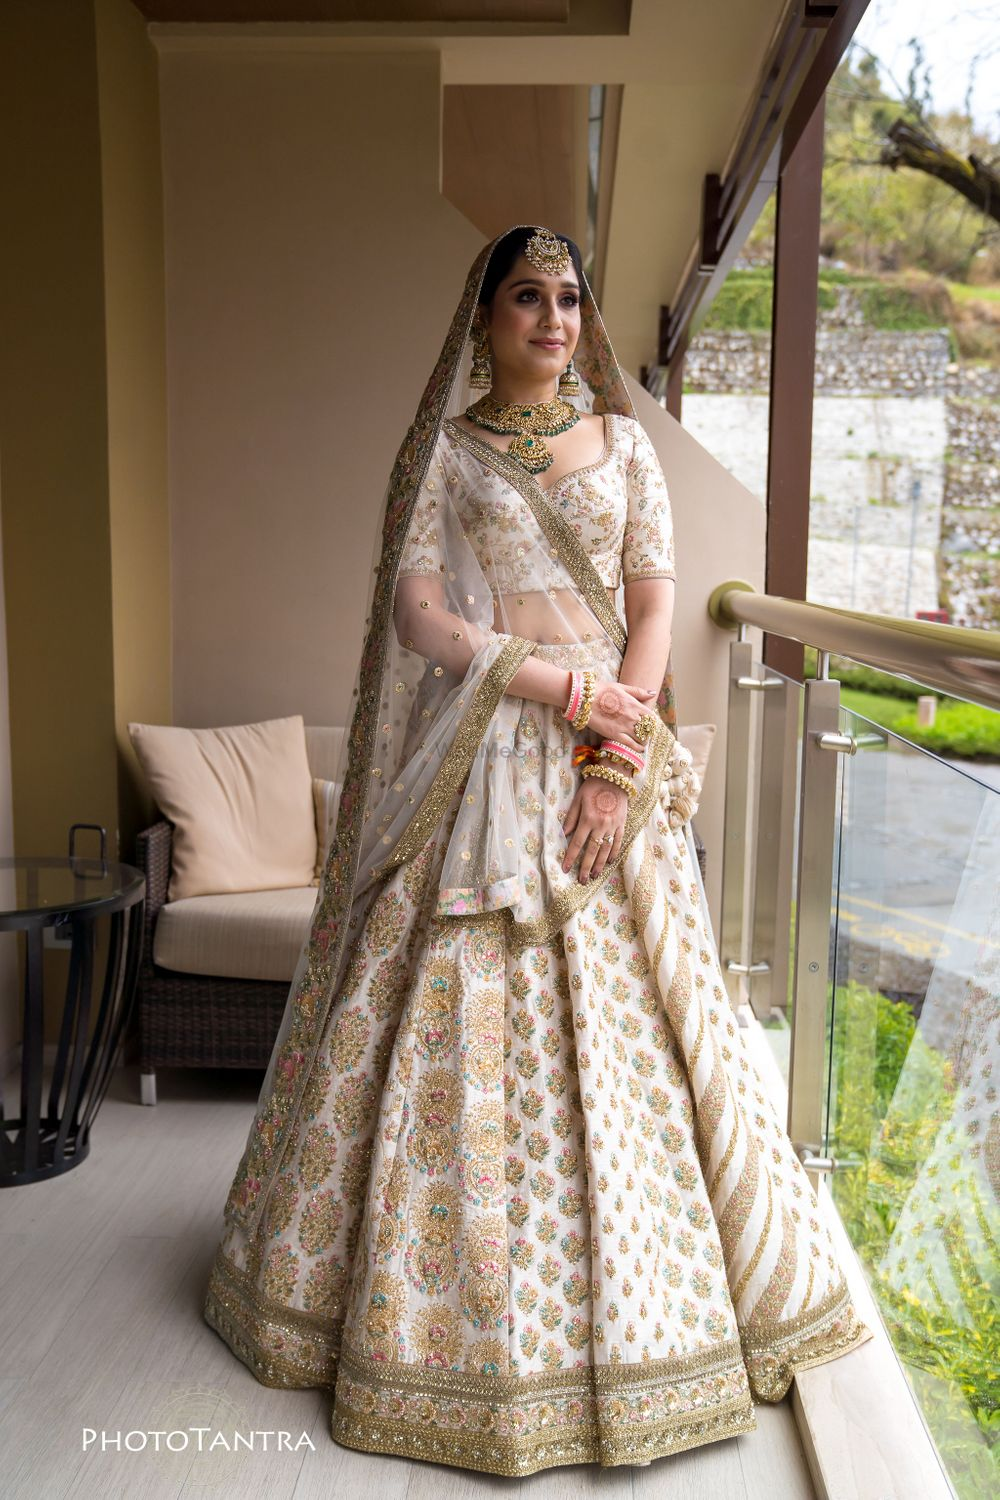 Photo of A bride in an ivory and gold lehenga with contrasting jewellery